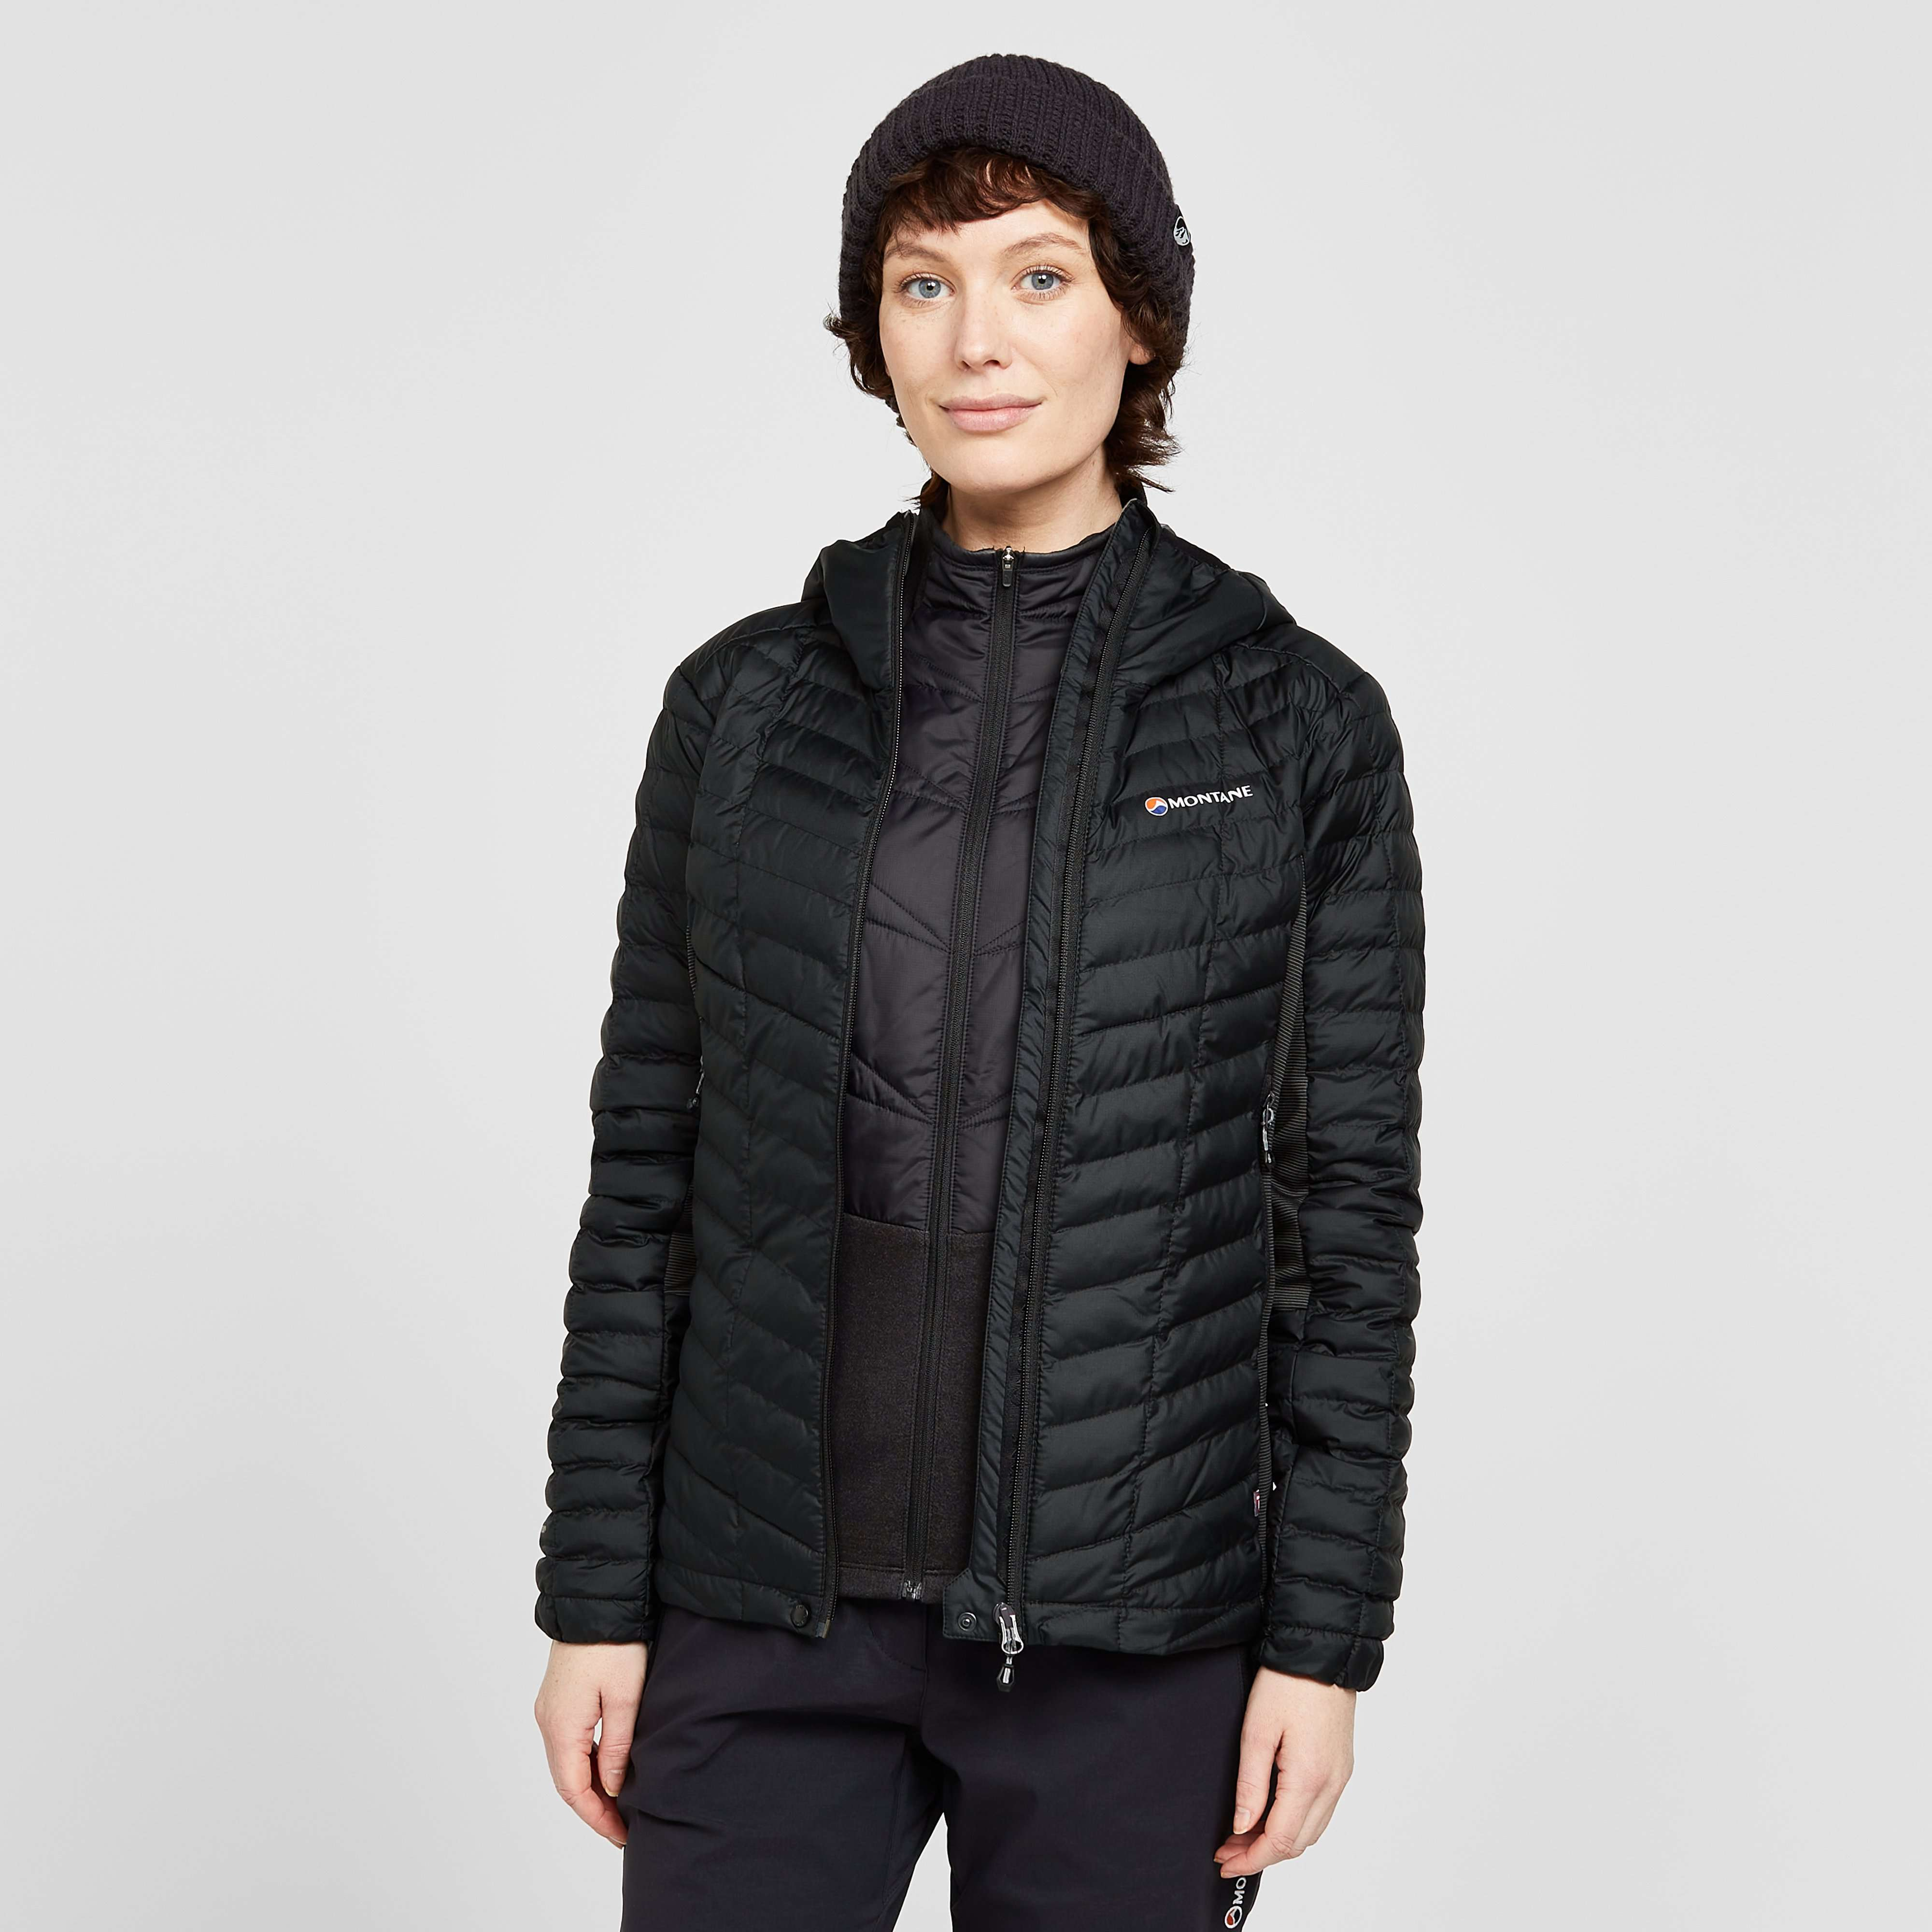 MONTANE Women's Phoenix Insulated Jacket